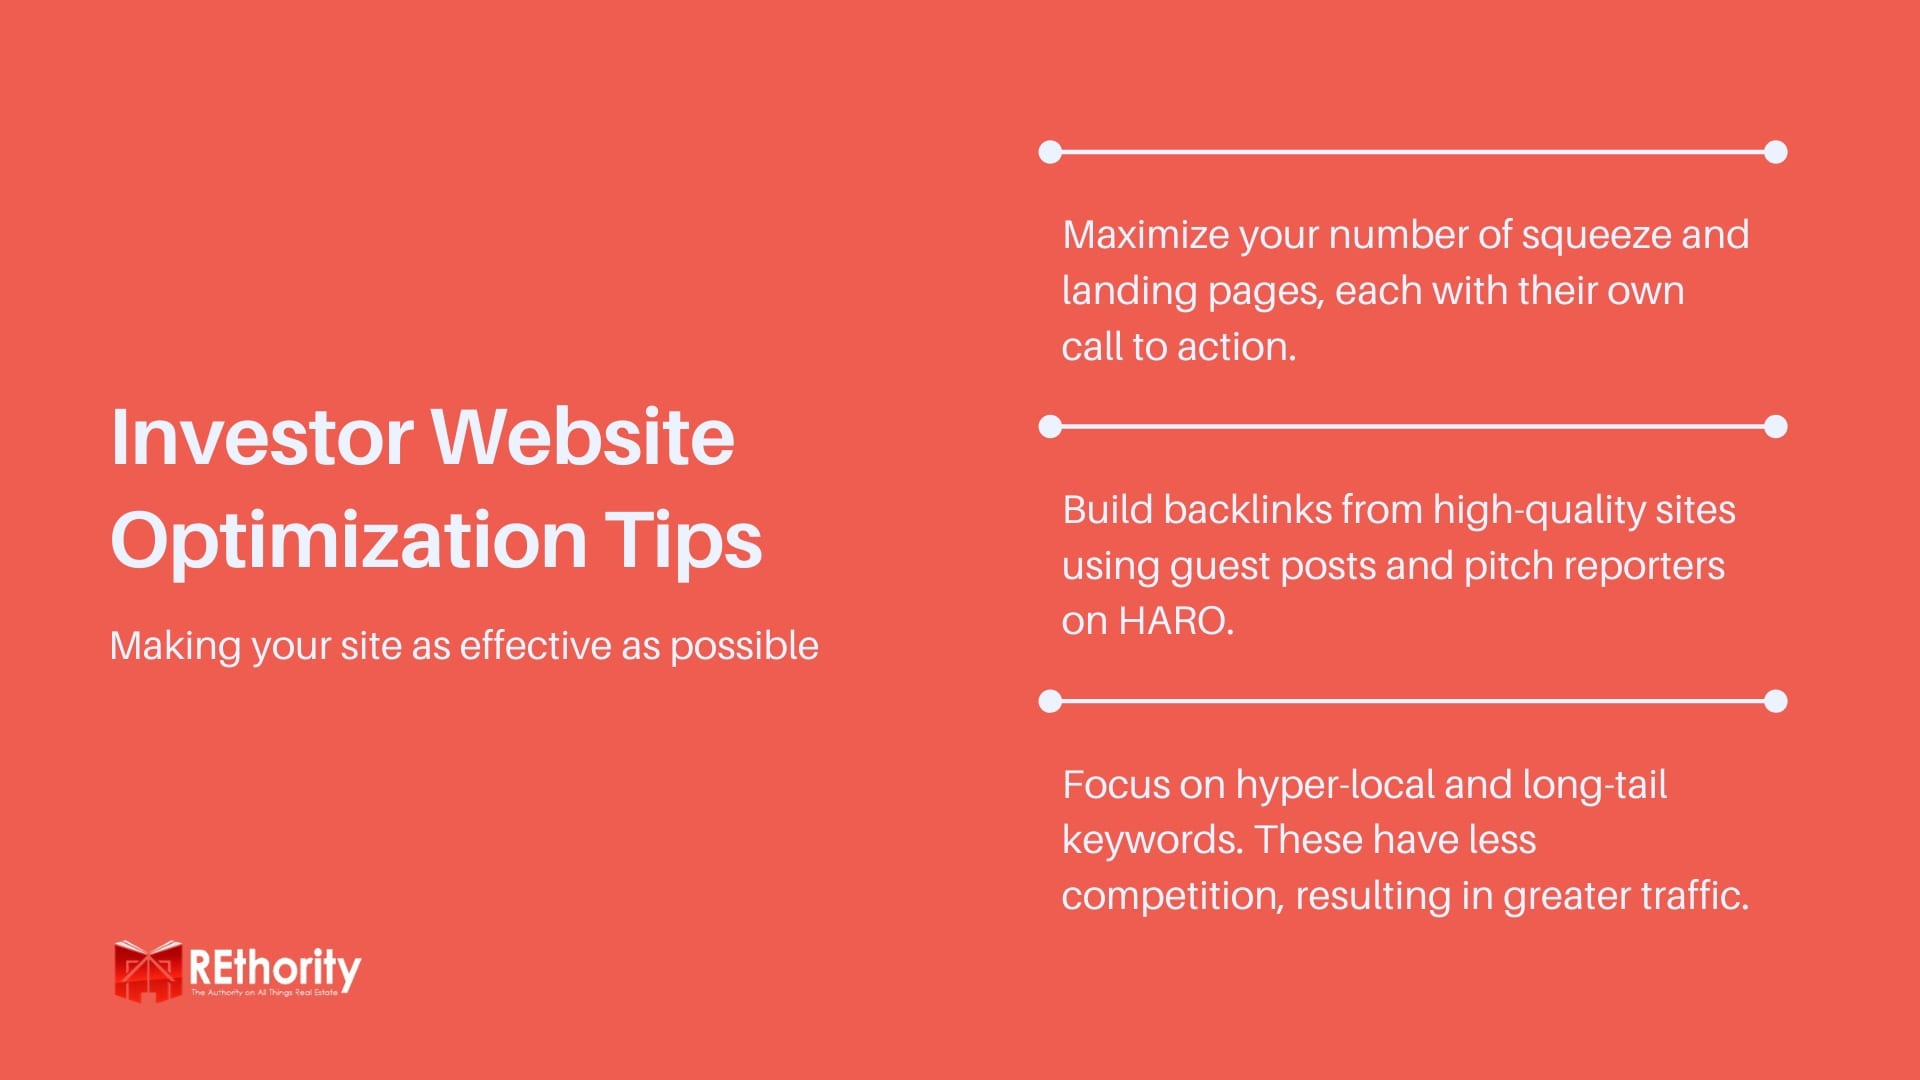 Real Estate Investor Website Optimization Tips